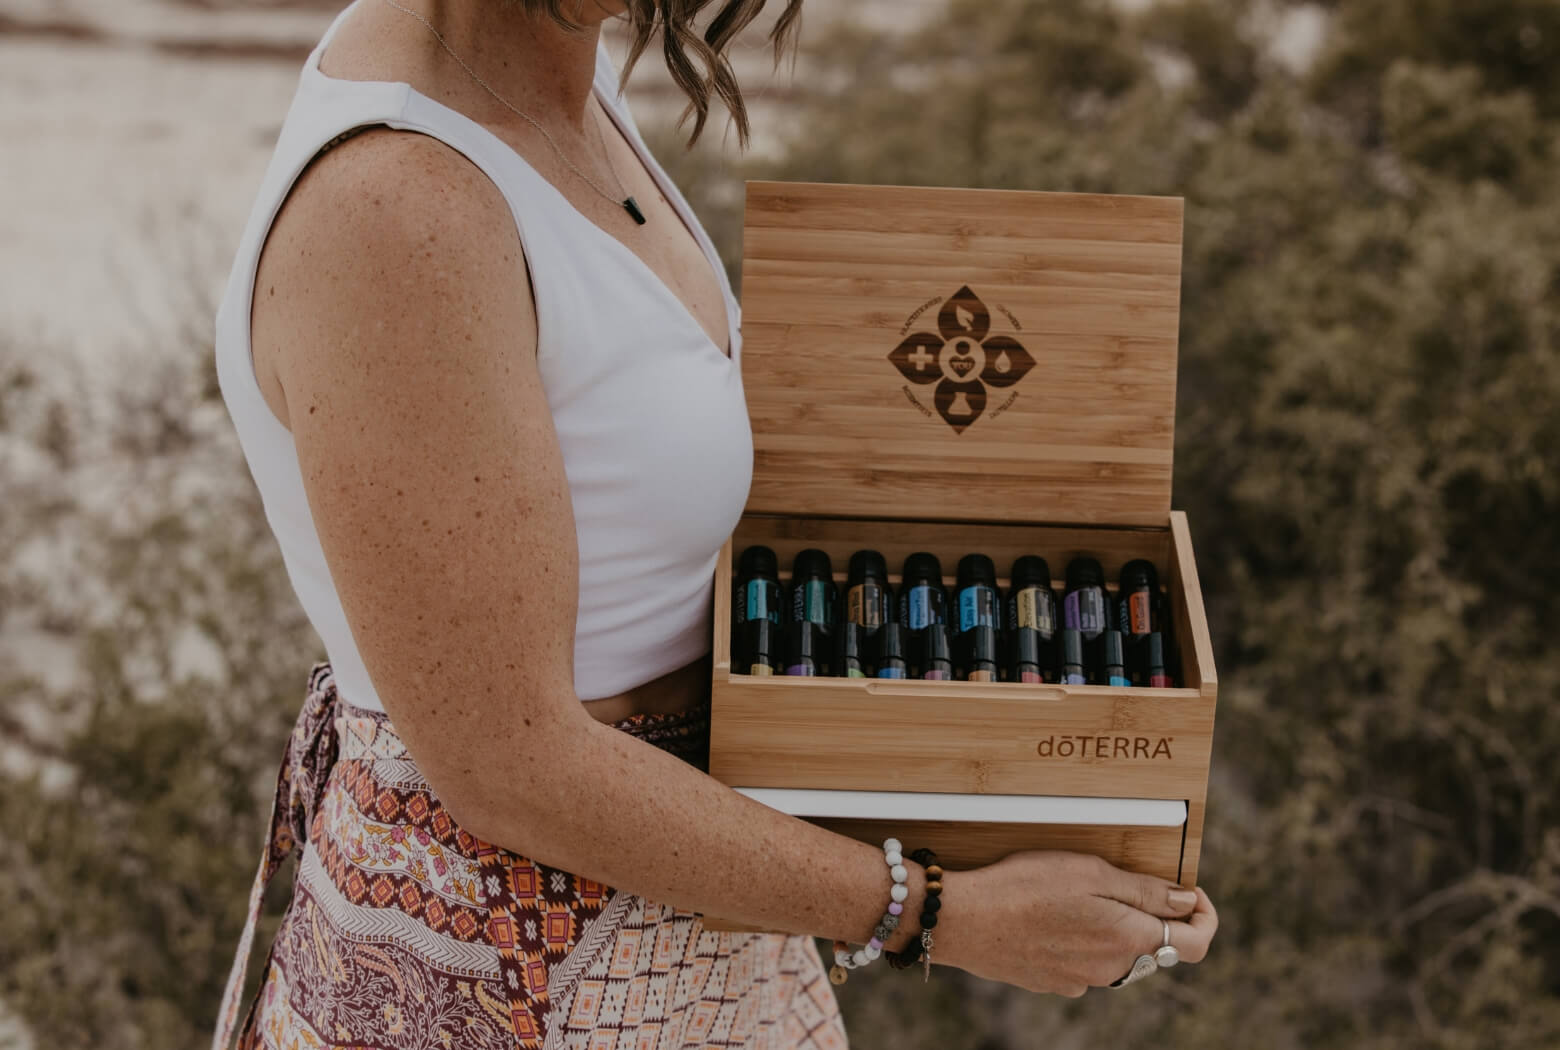 Why you should choose doTERRA essential oils